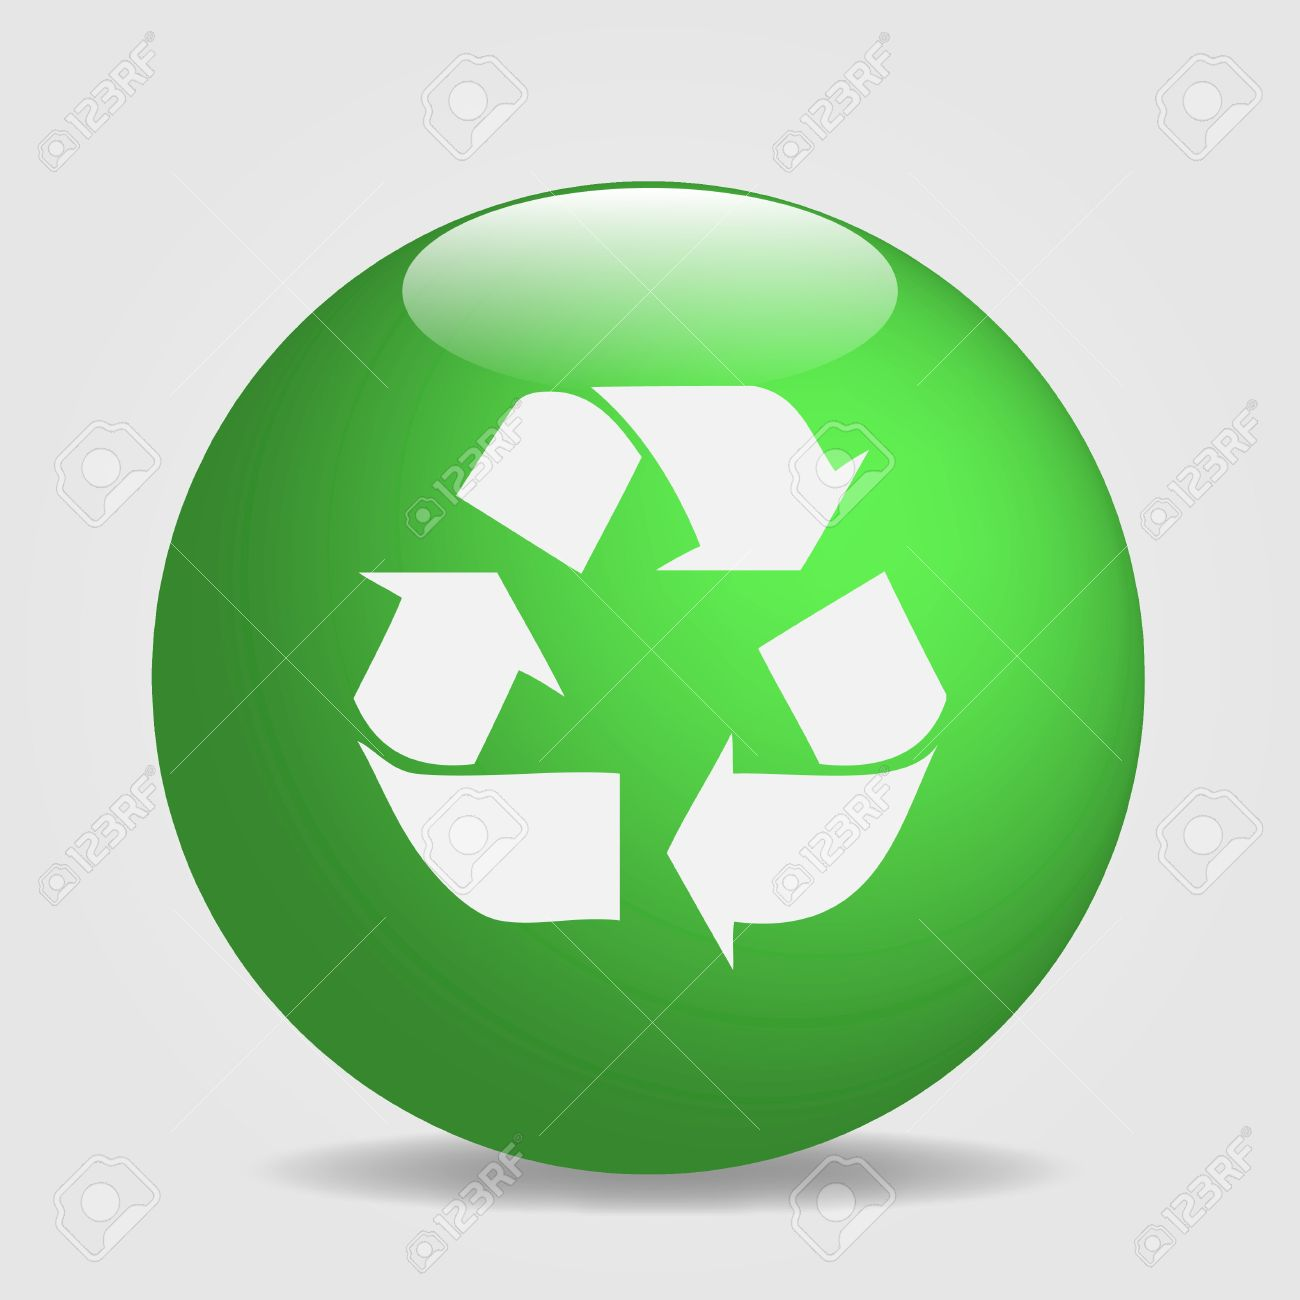 Greenv0512485523 Image Of A Globe With The Recycle Symbol